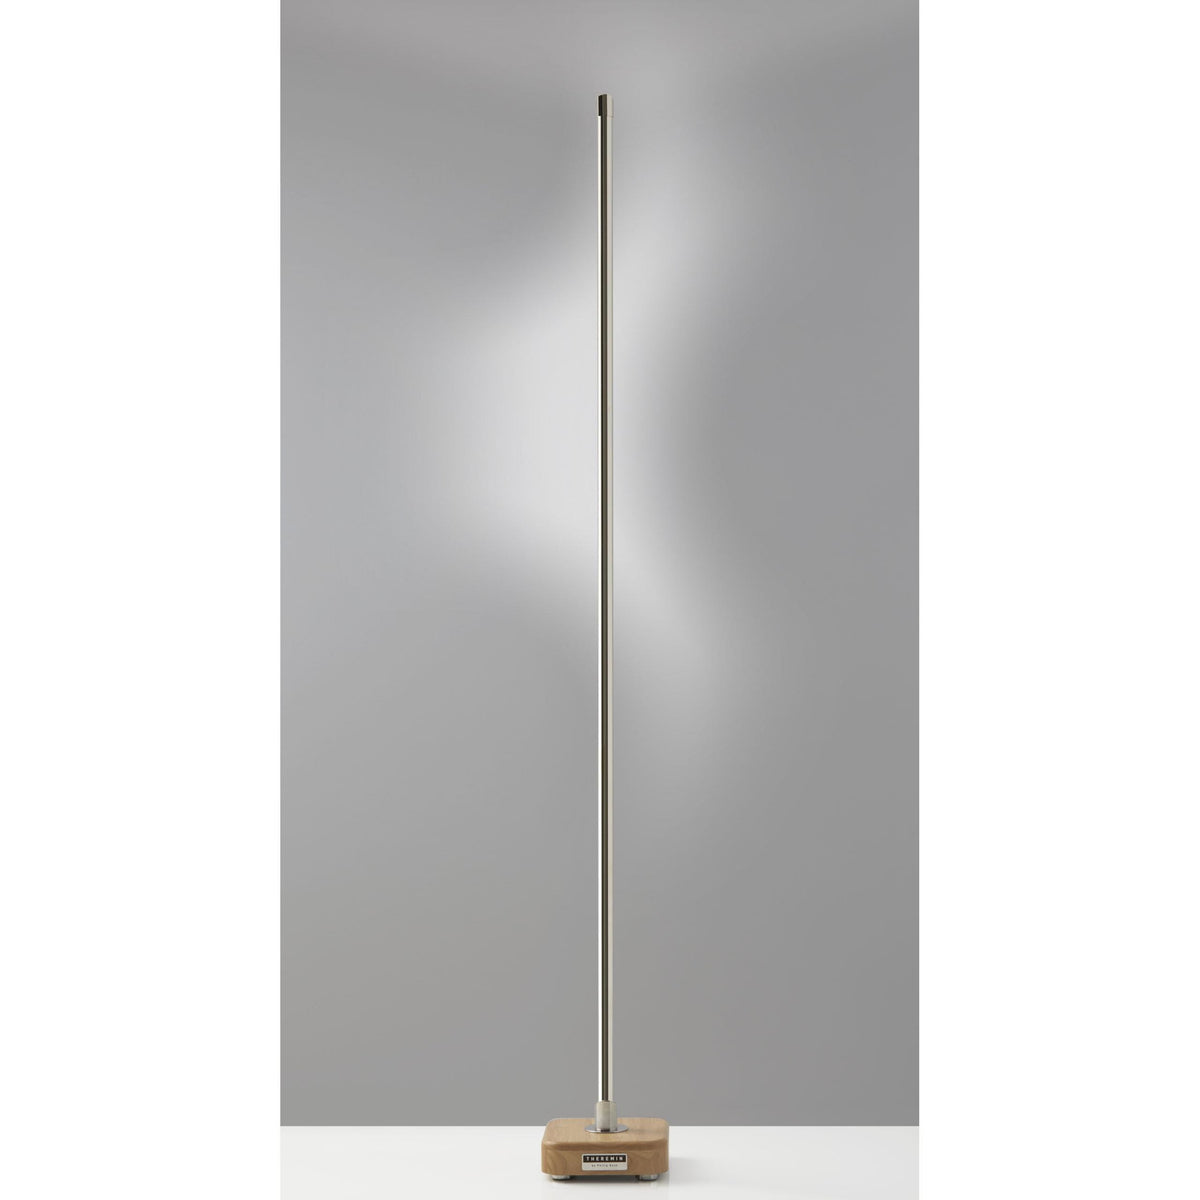 Adesso Home - AD9200-01 - LED Floor Lamp - Theremin - Black Nickel